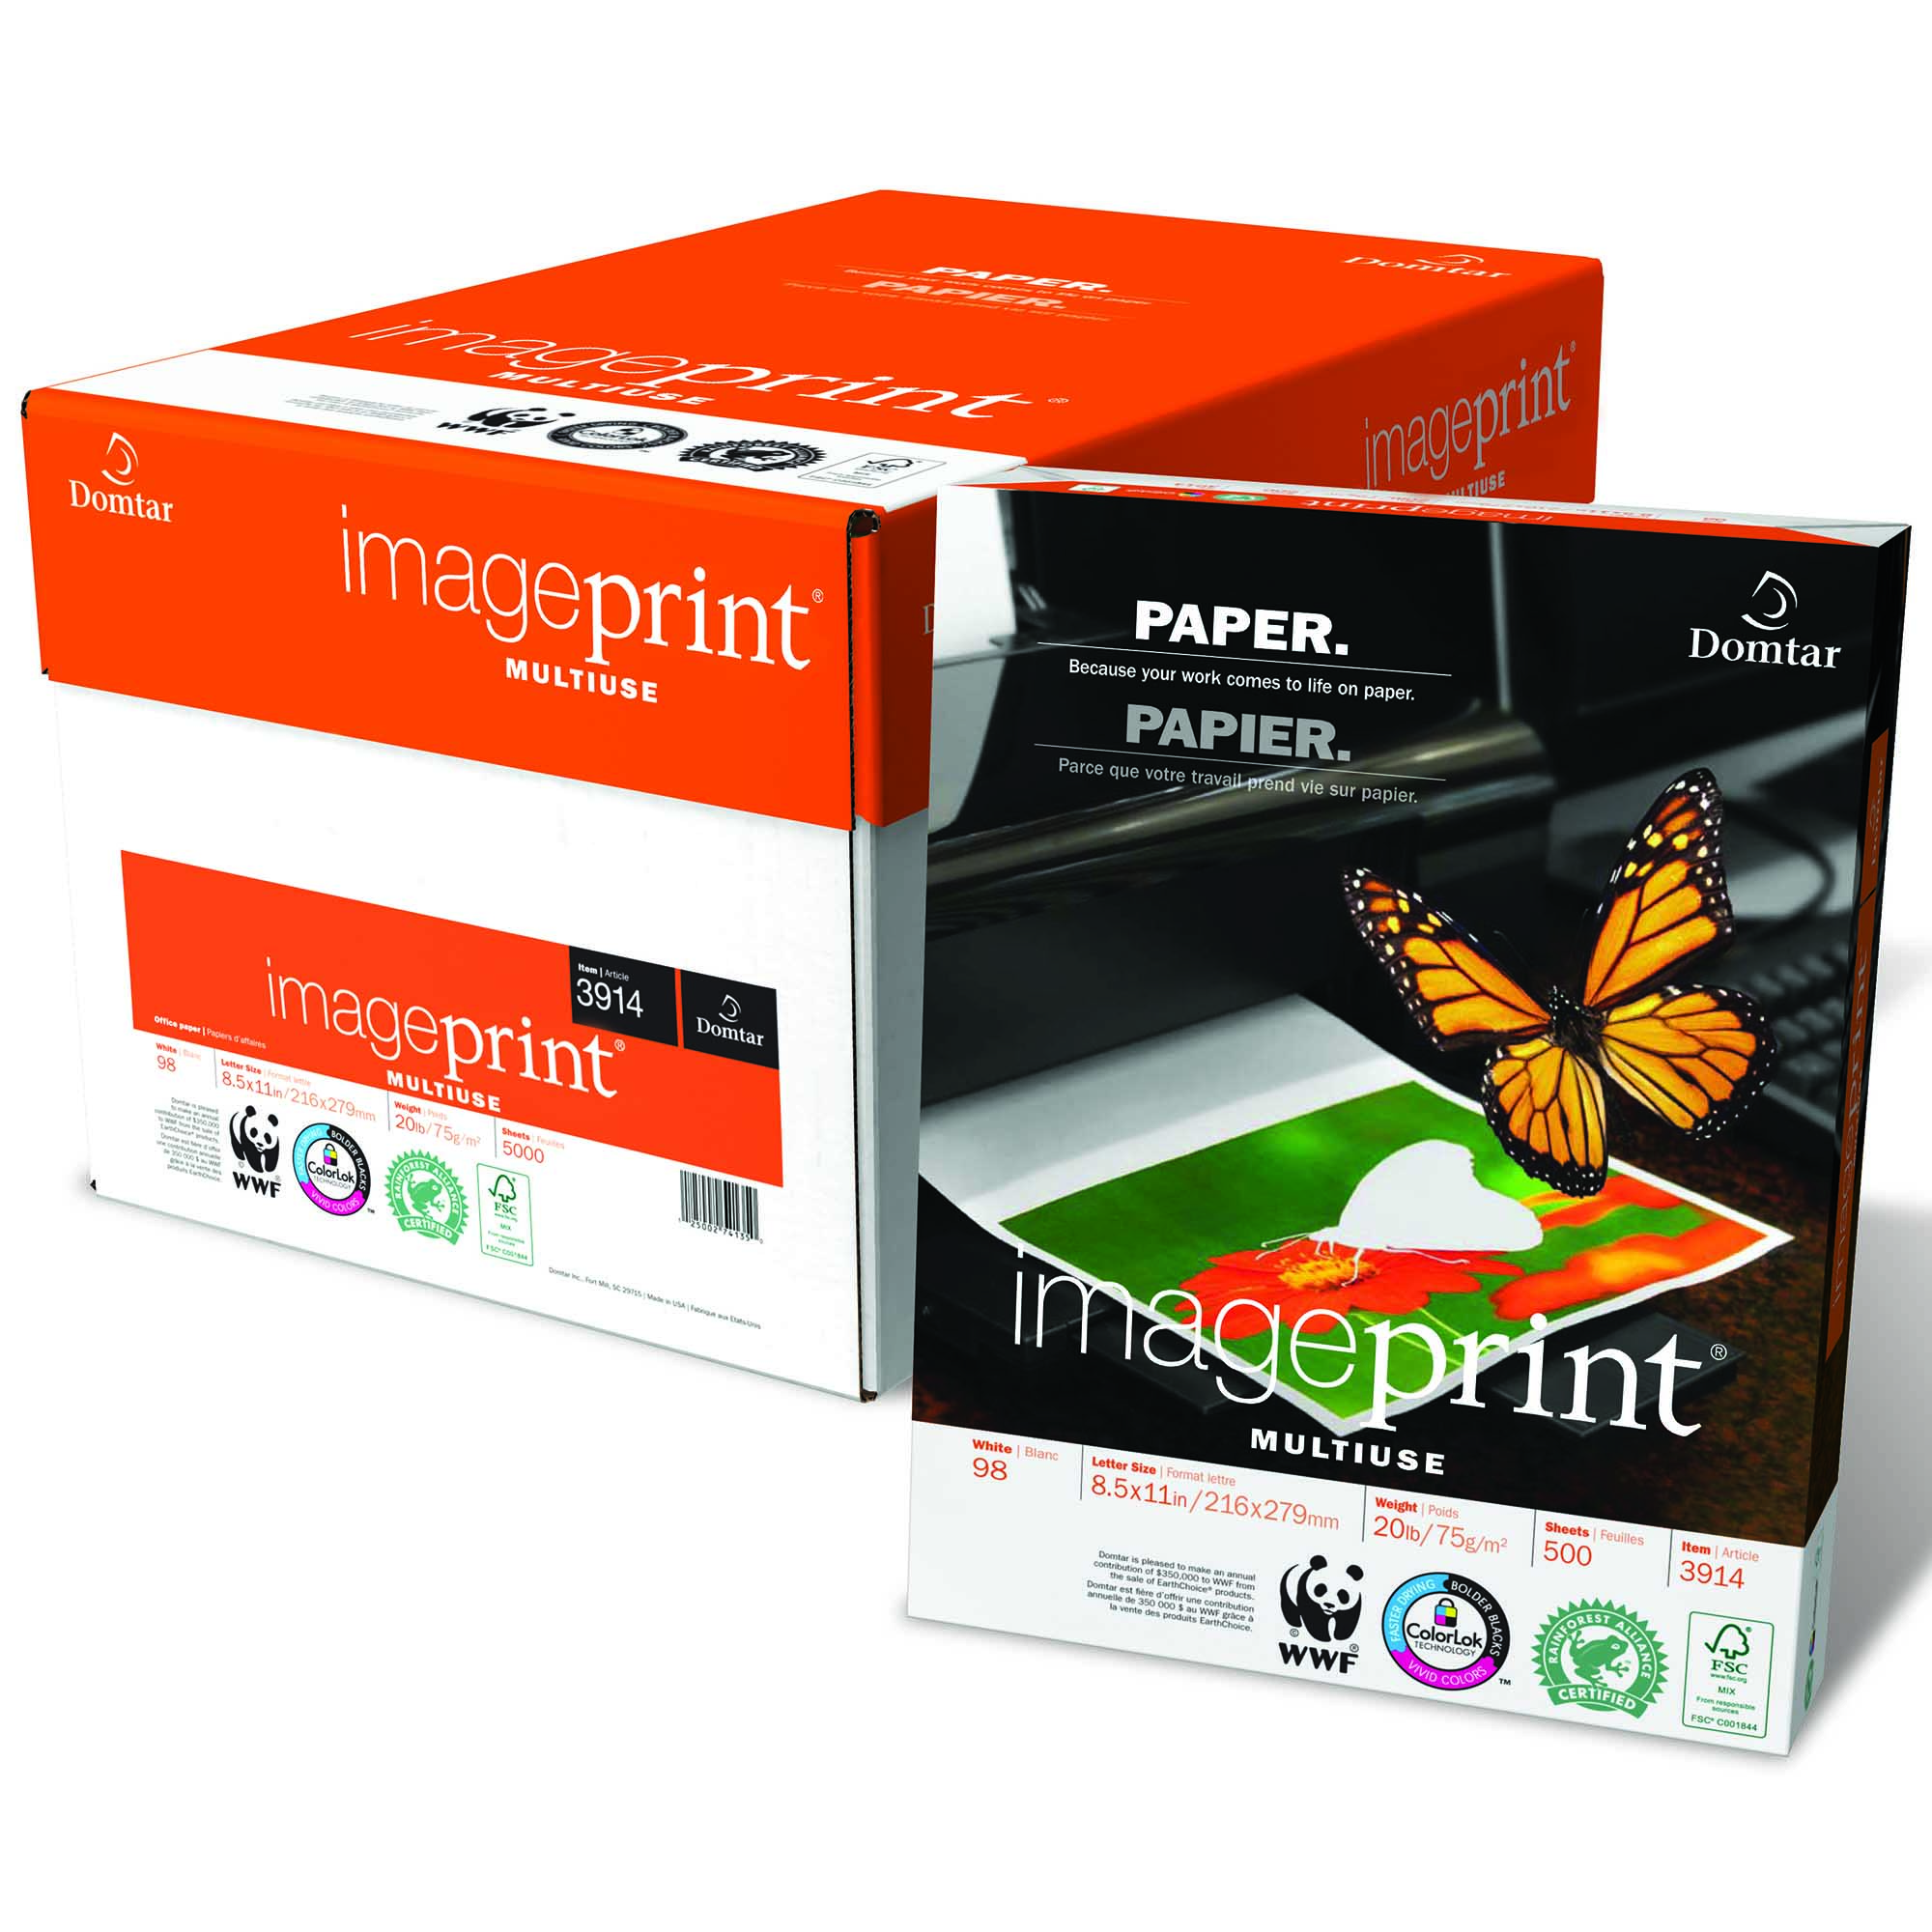 A box of ImagePrint® Multiuse paper by Domtar